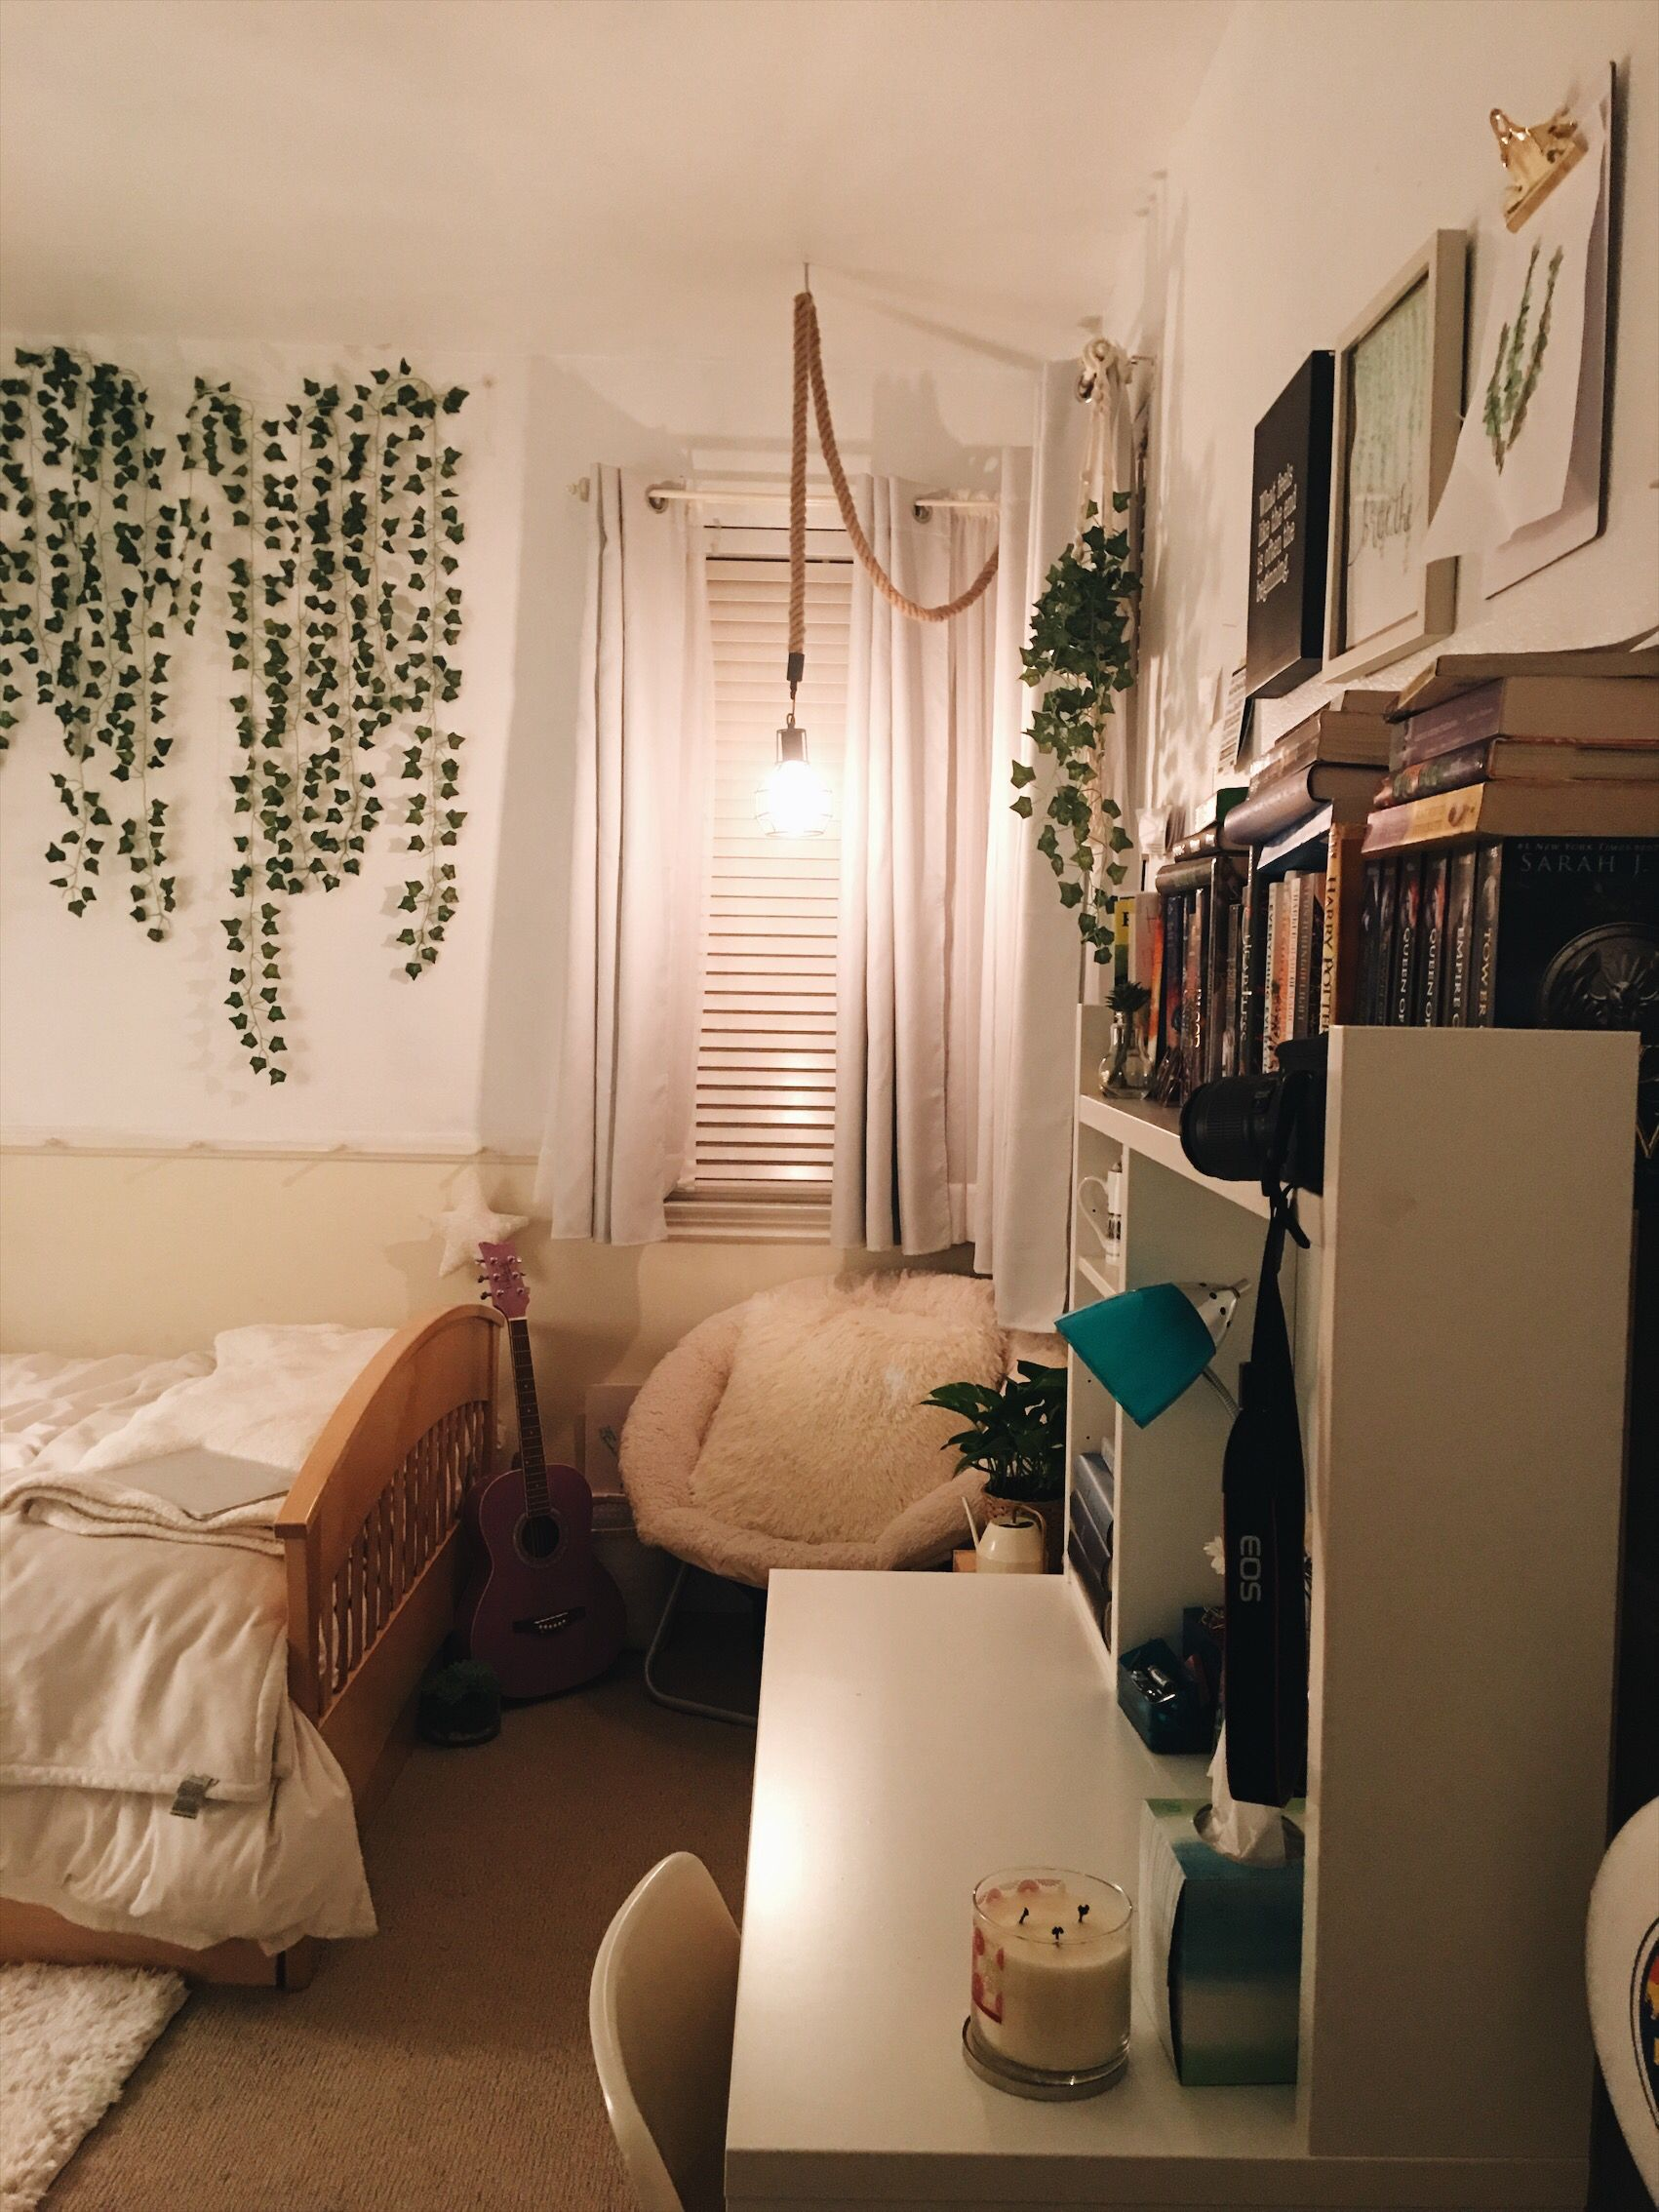 I pretty much finished my room and I'm in love? | Dorm ... on Room Decor Ideas De Cuartos Aesthetic id=59715